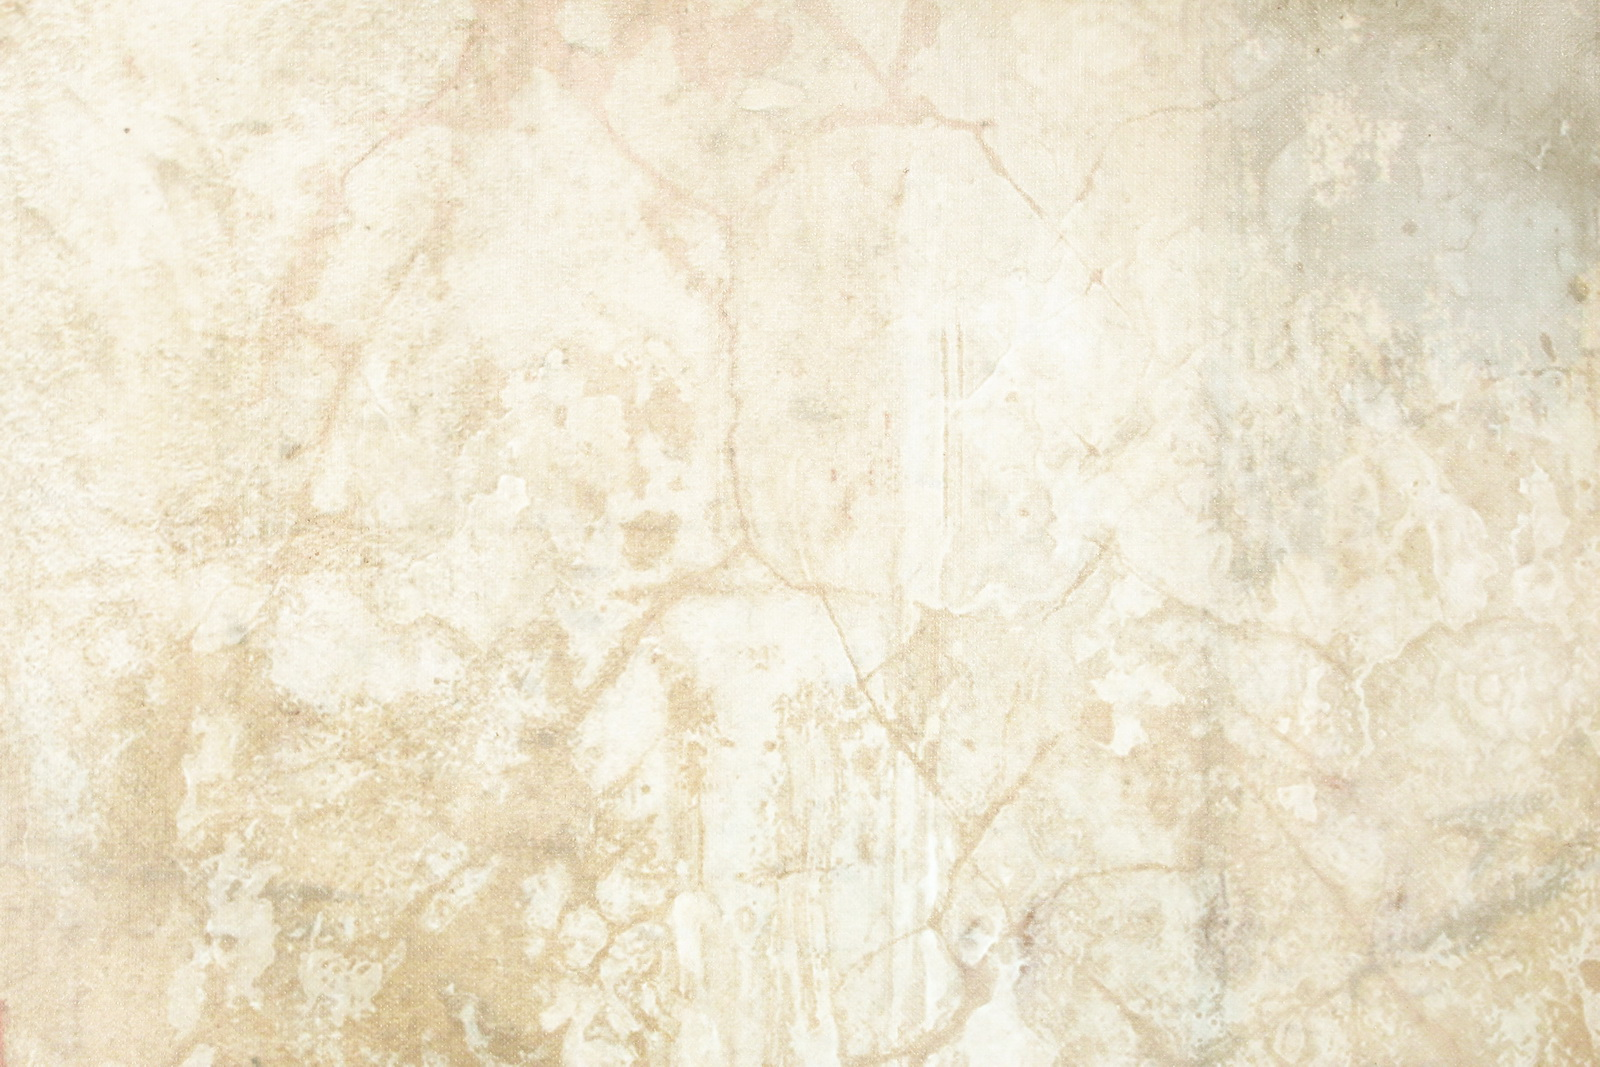 Stucco texture download photo background stucco for Lightweight stucco